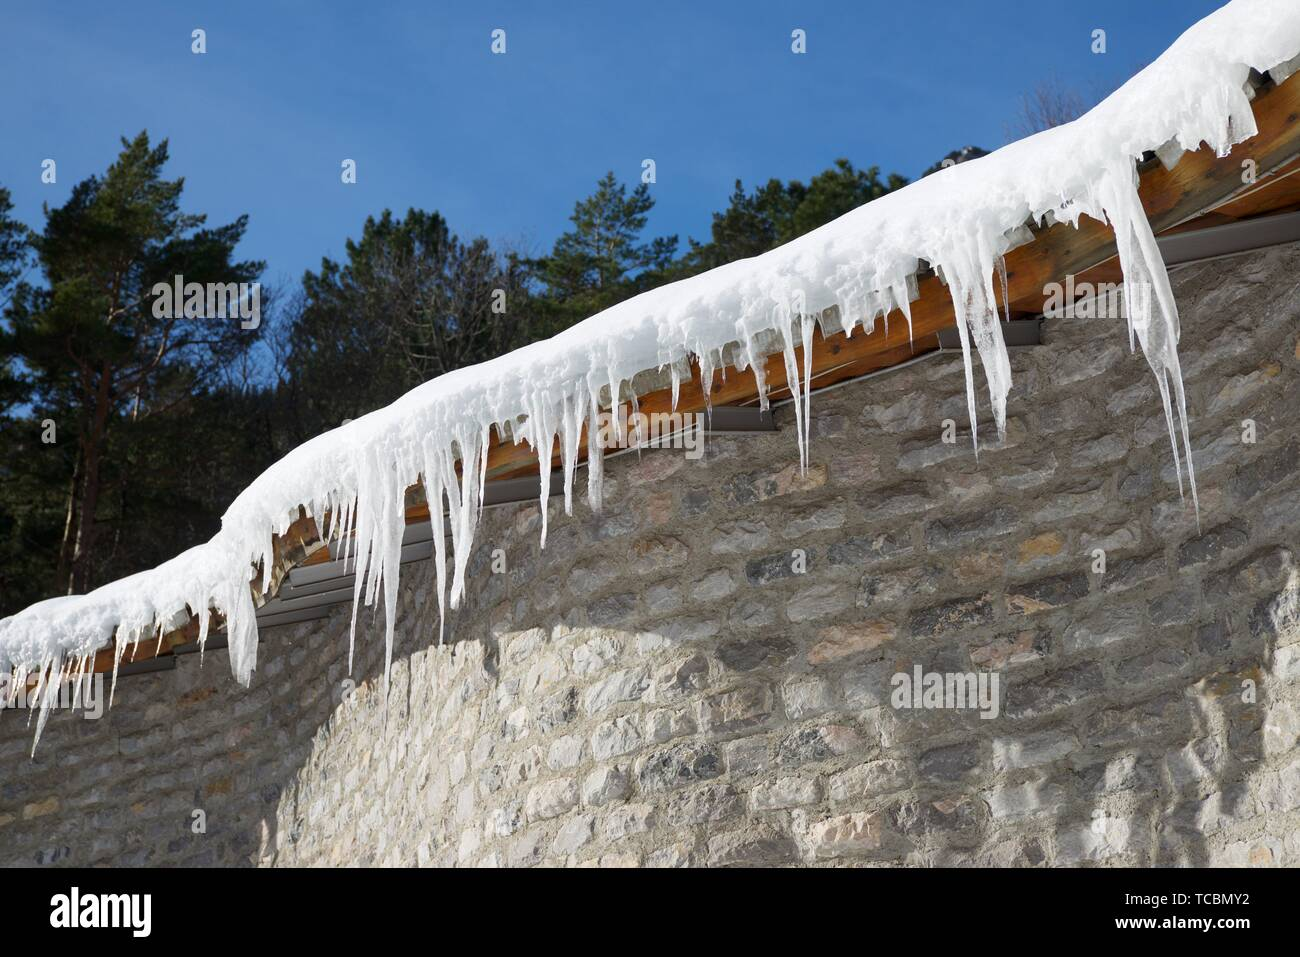 Icicles Canfranc Valley, Pyrenees, Huesca Province, Aragon, Spain. - Stock Image